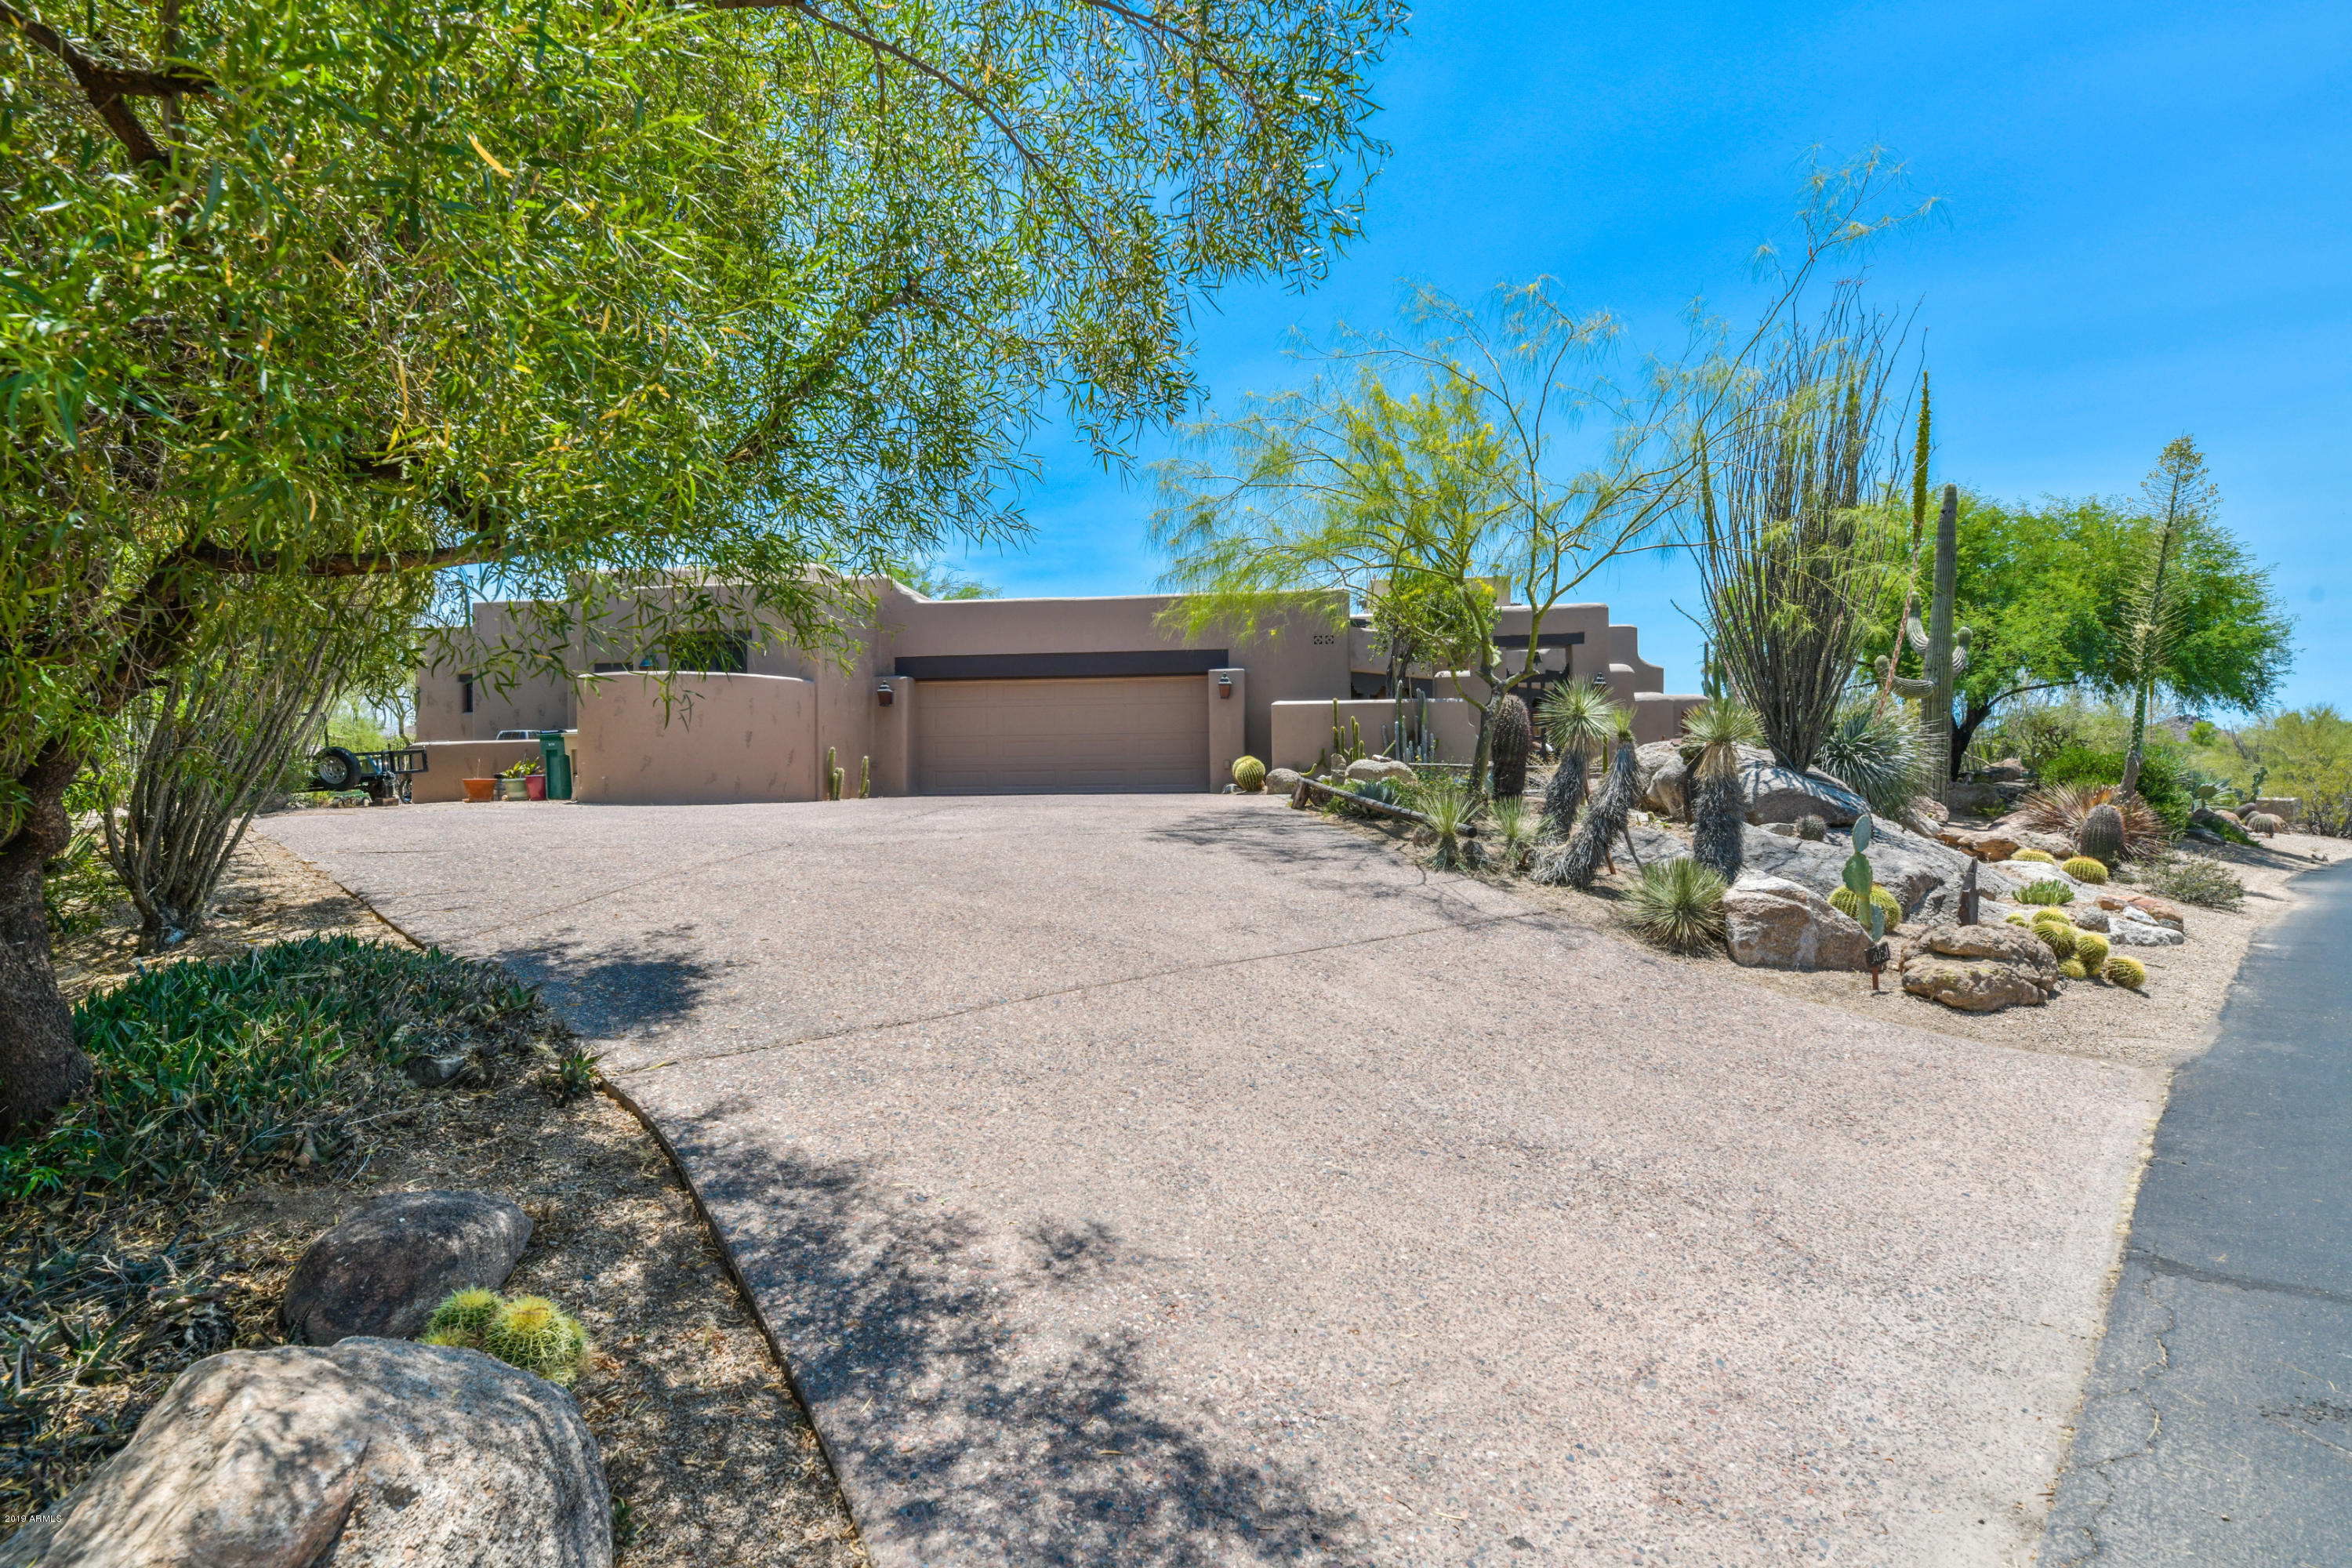 MLS 5947616 3051 IRONWOOD Road, Carefree, AZ 85377 Carefree AZ Three Bedroom